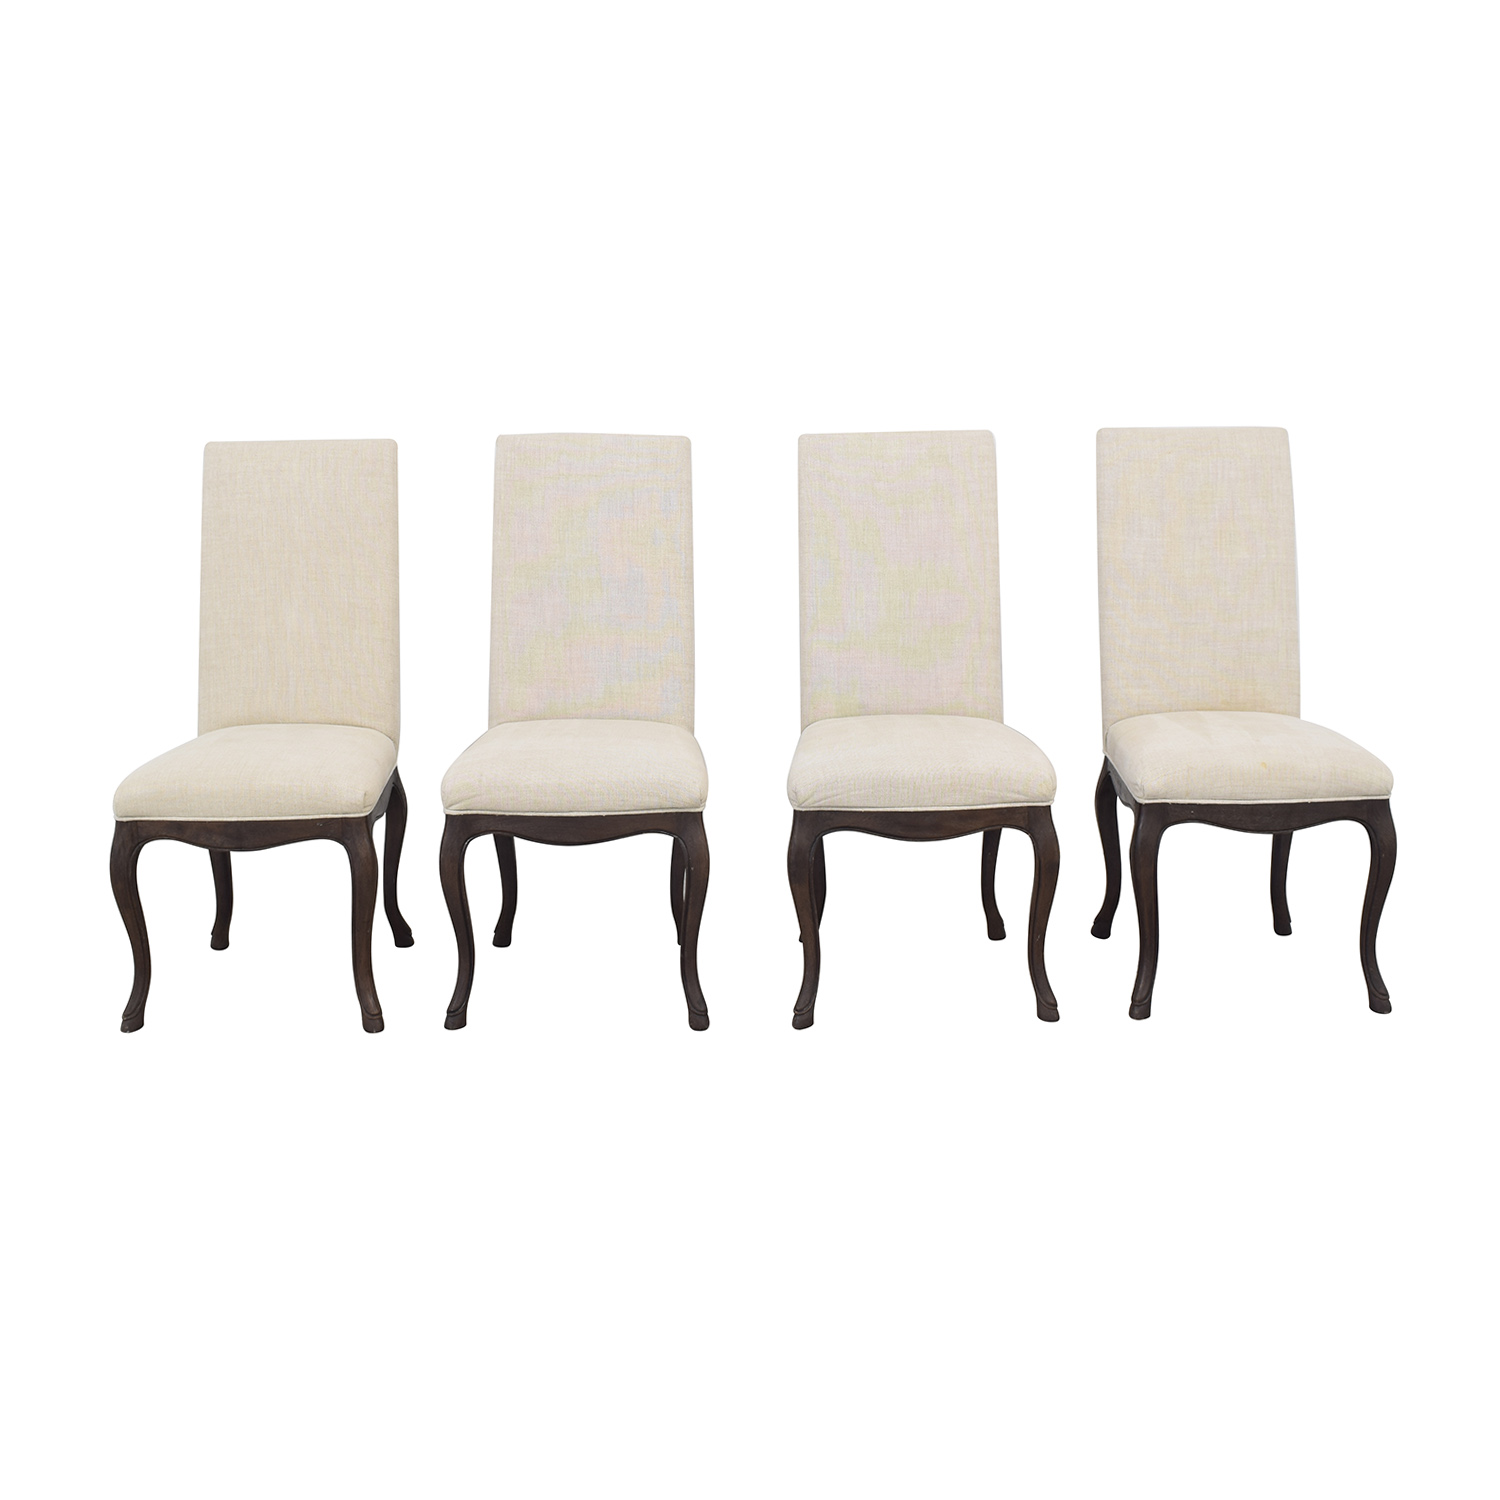 buy Restoration Hardware Restoration Hardware Louis XV Cabriole Chairs online